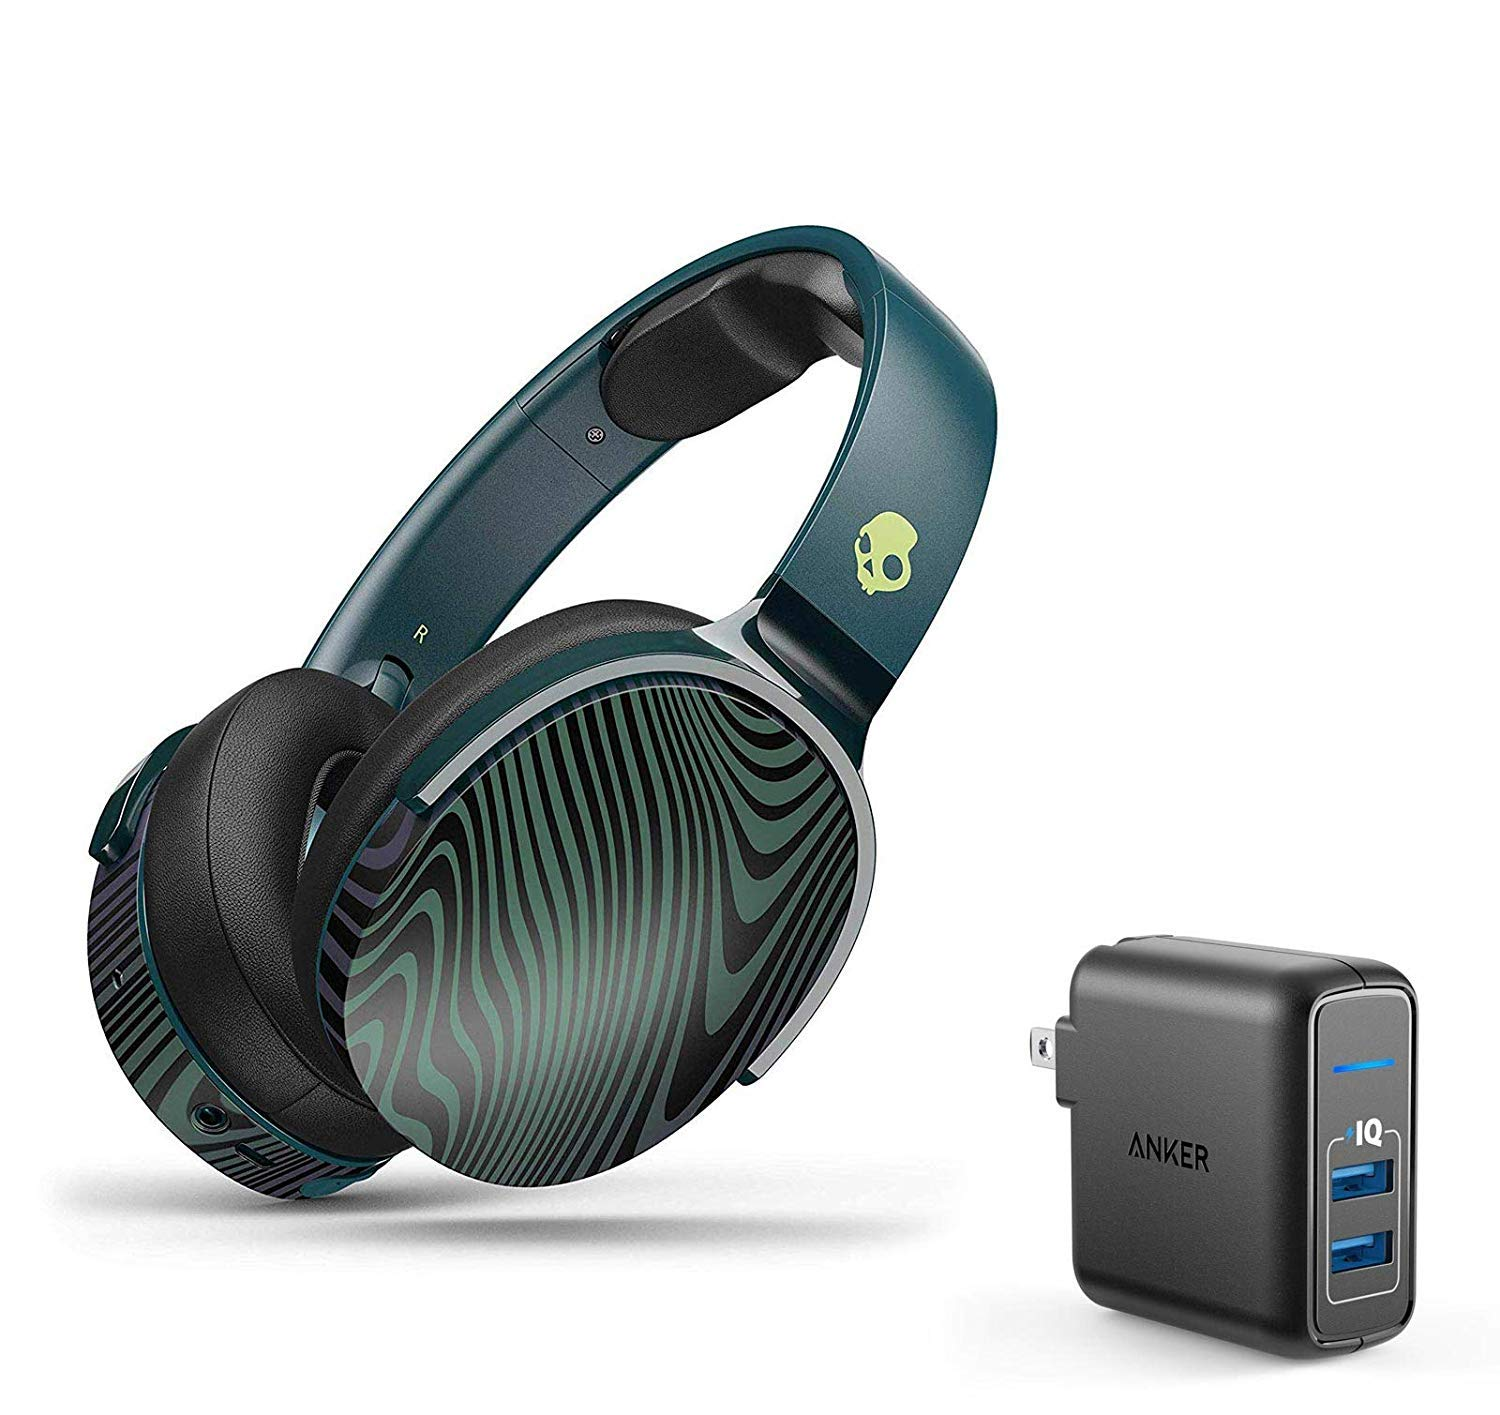 Skullcandy HESH 3 Noise Canceling Over-Ear Wireless Bluetooth Headphone Bundle with Anker 2 Ports USB Wall Charger - Psycho Tropical